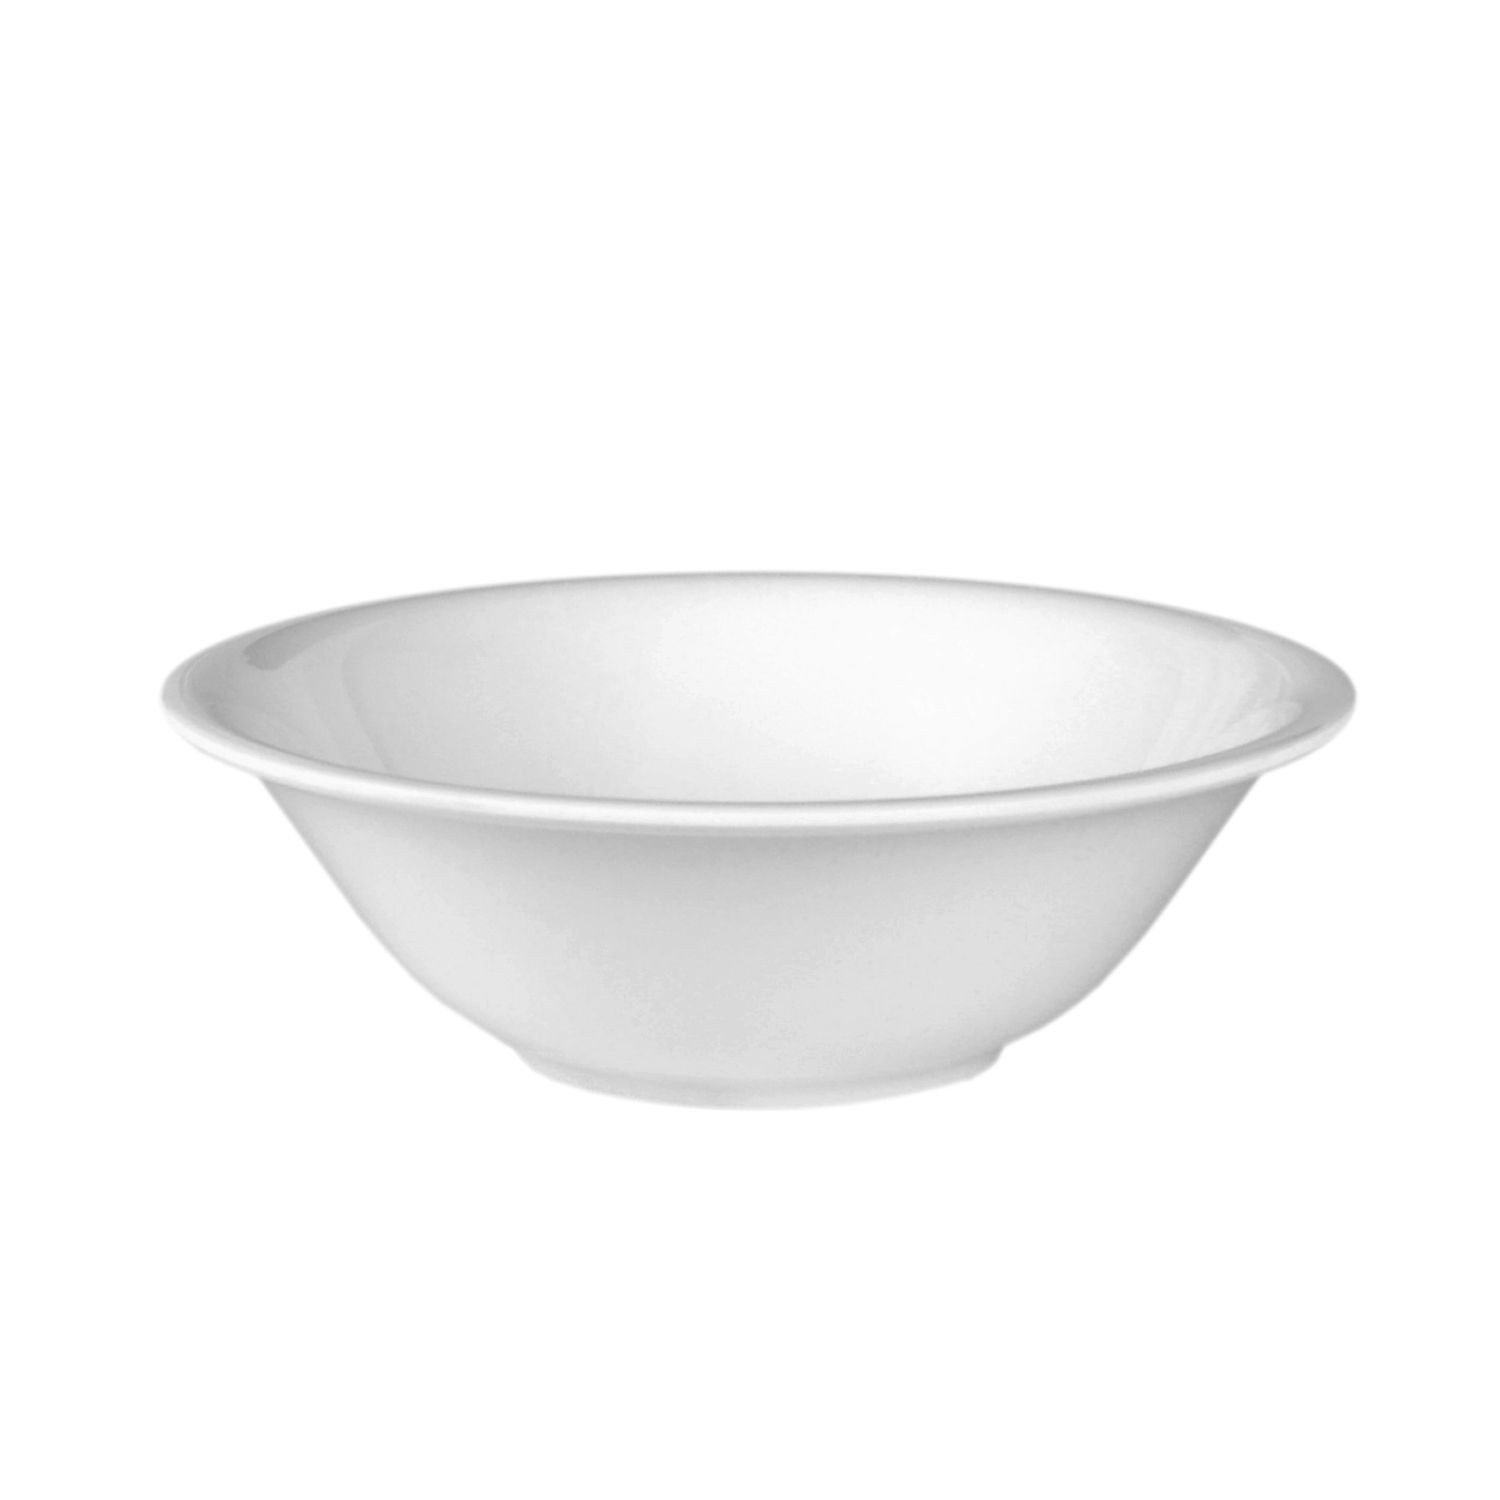 Thunder Group 5108TW Imperial White Melamine Deep Bowl 34 oz.